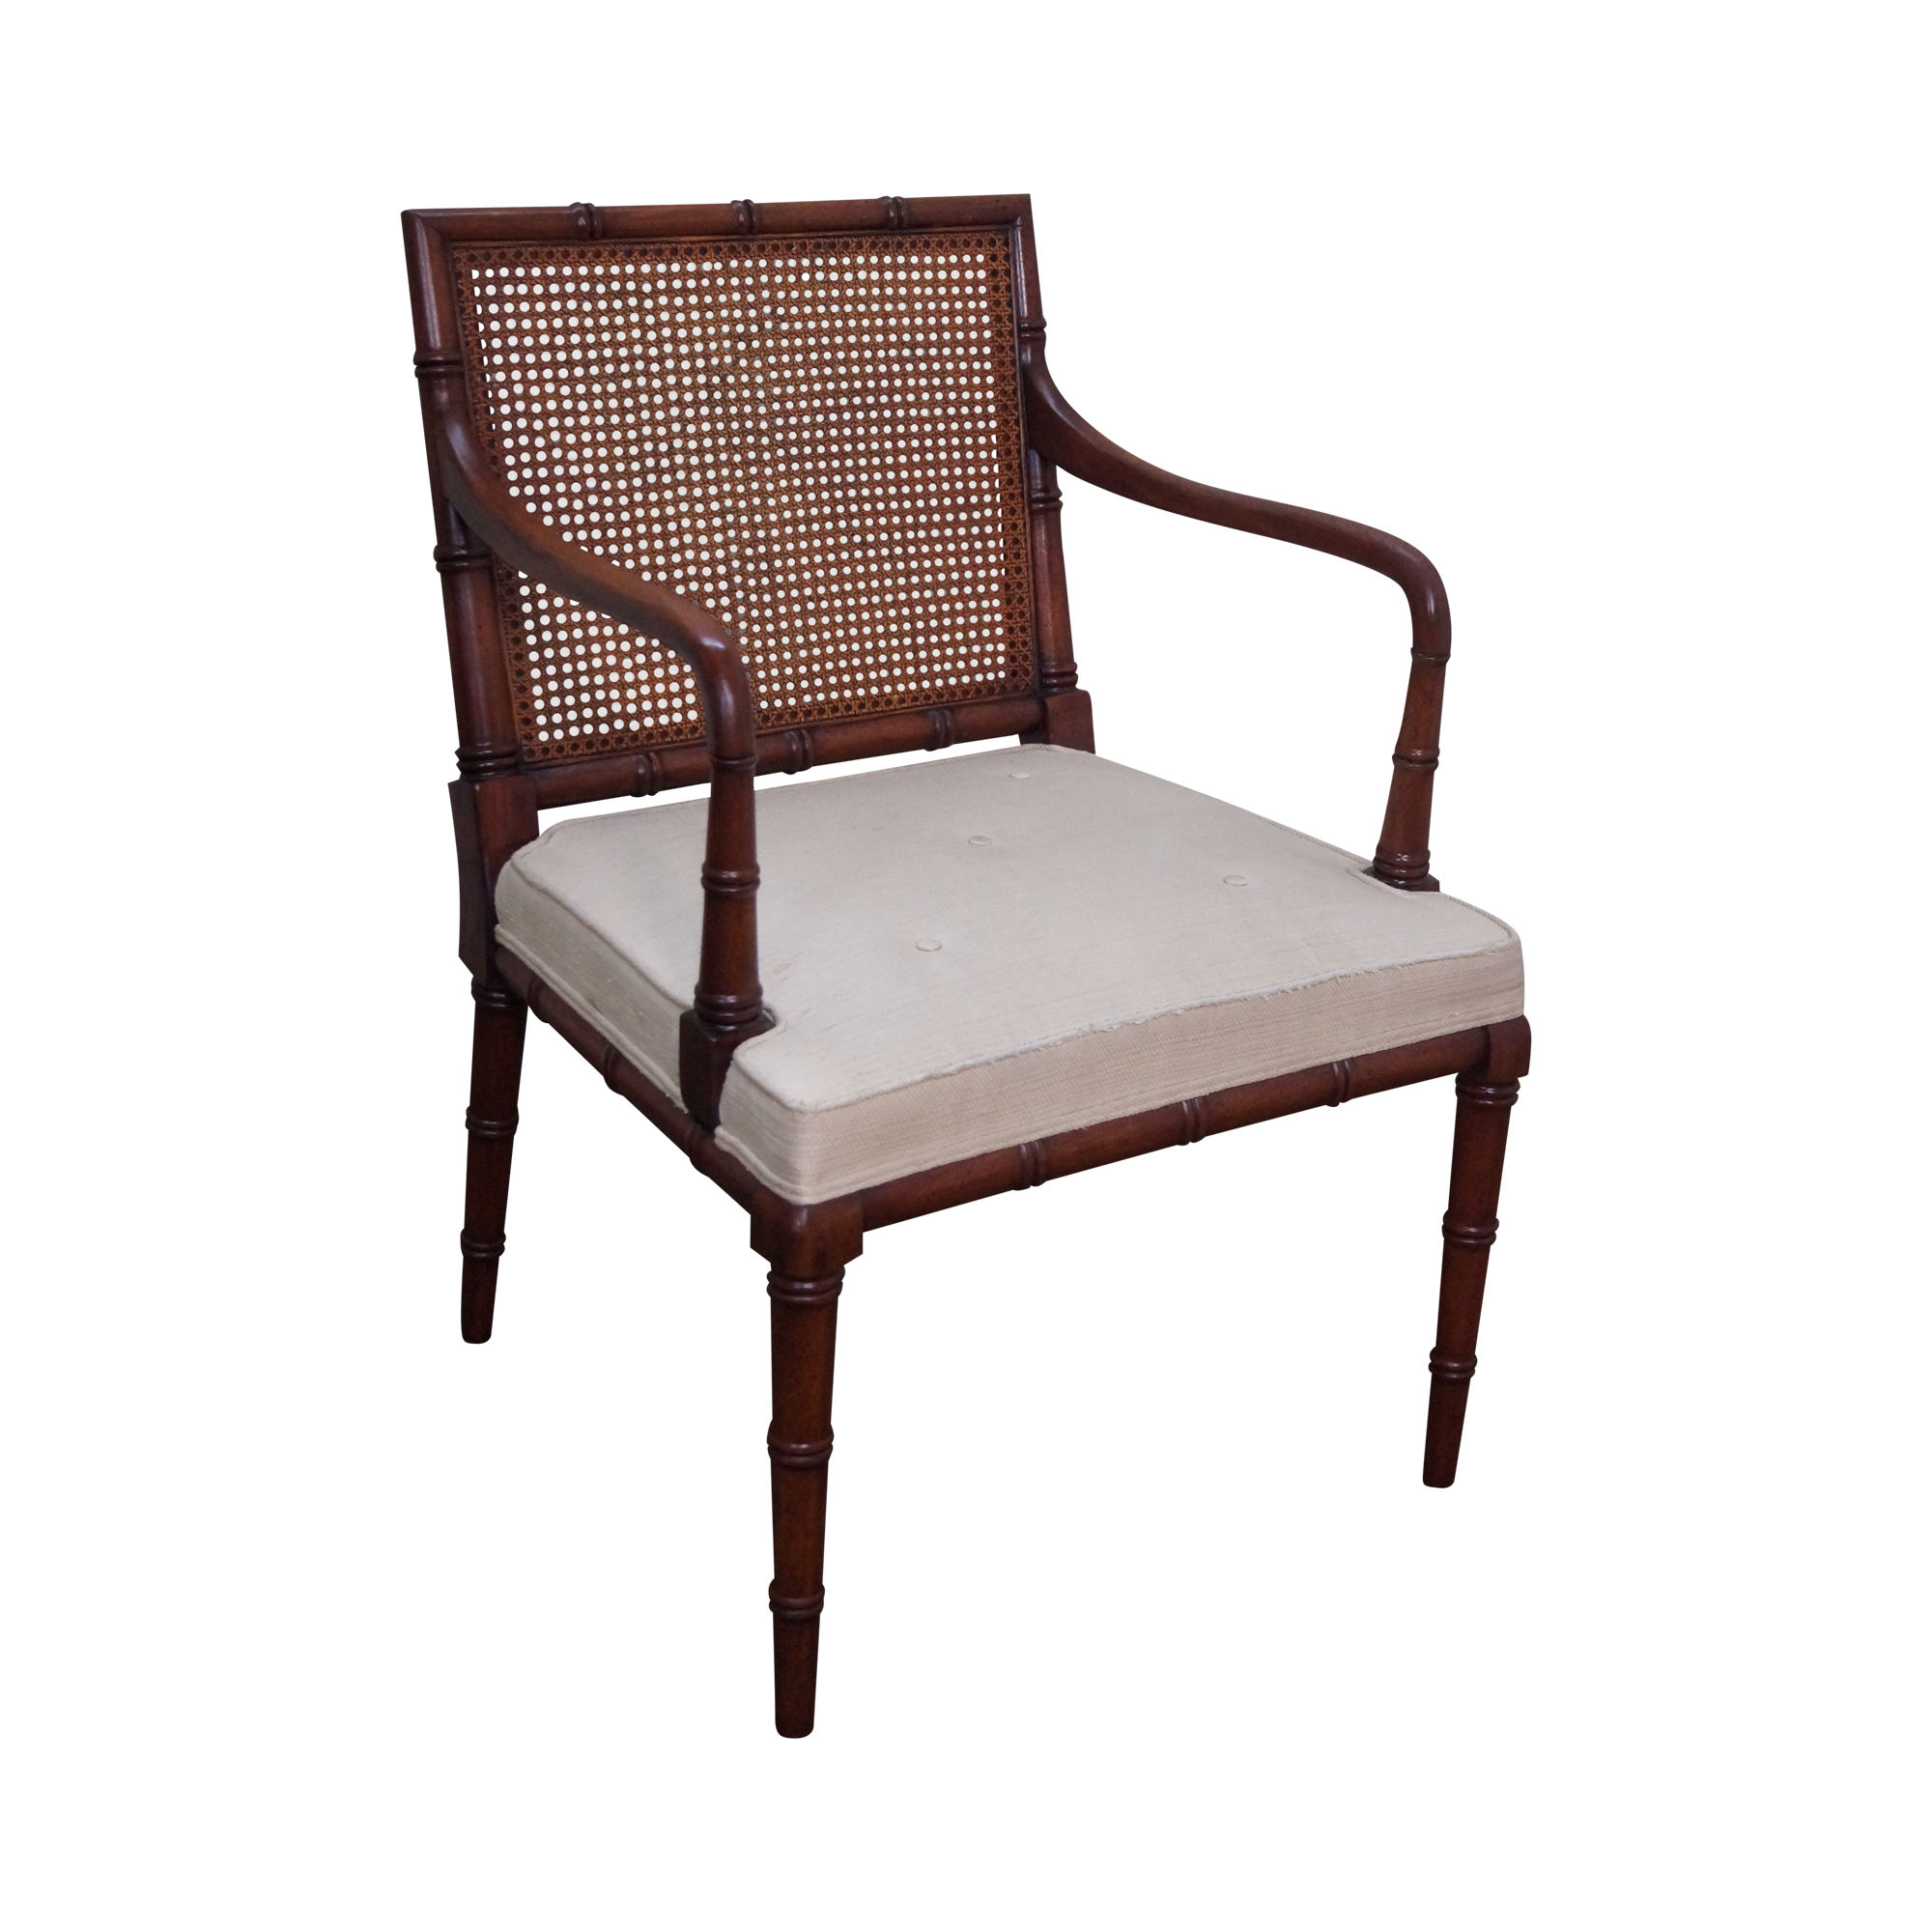 Bamboo Chair With Arms: Solid Mahogany Faux Bamboo Cane Back Arm Chair